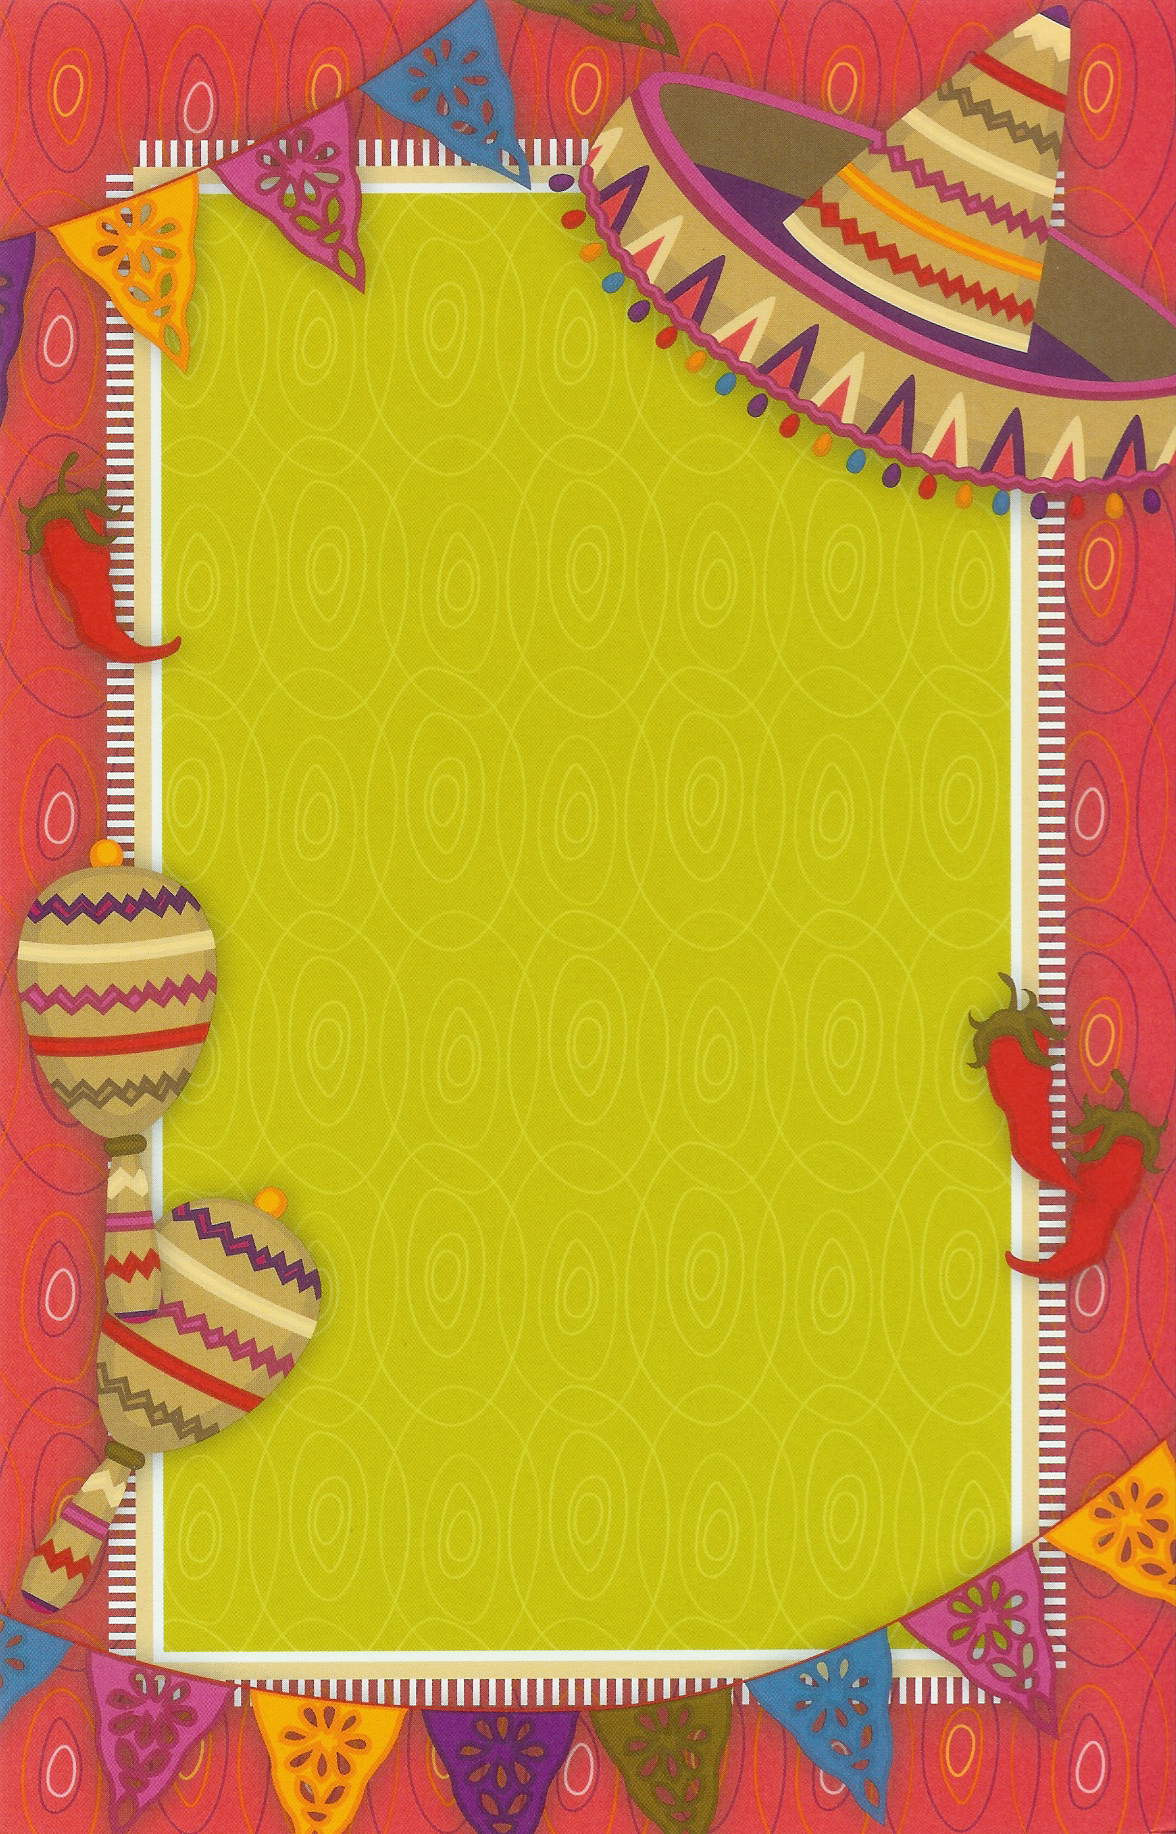 Hot Fiesta Invitation Cards And Free Printable Fiesta Party - Free Printable Mexican Fiesta Invitations